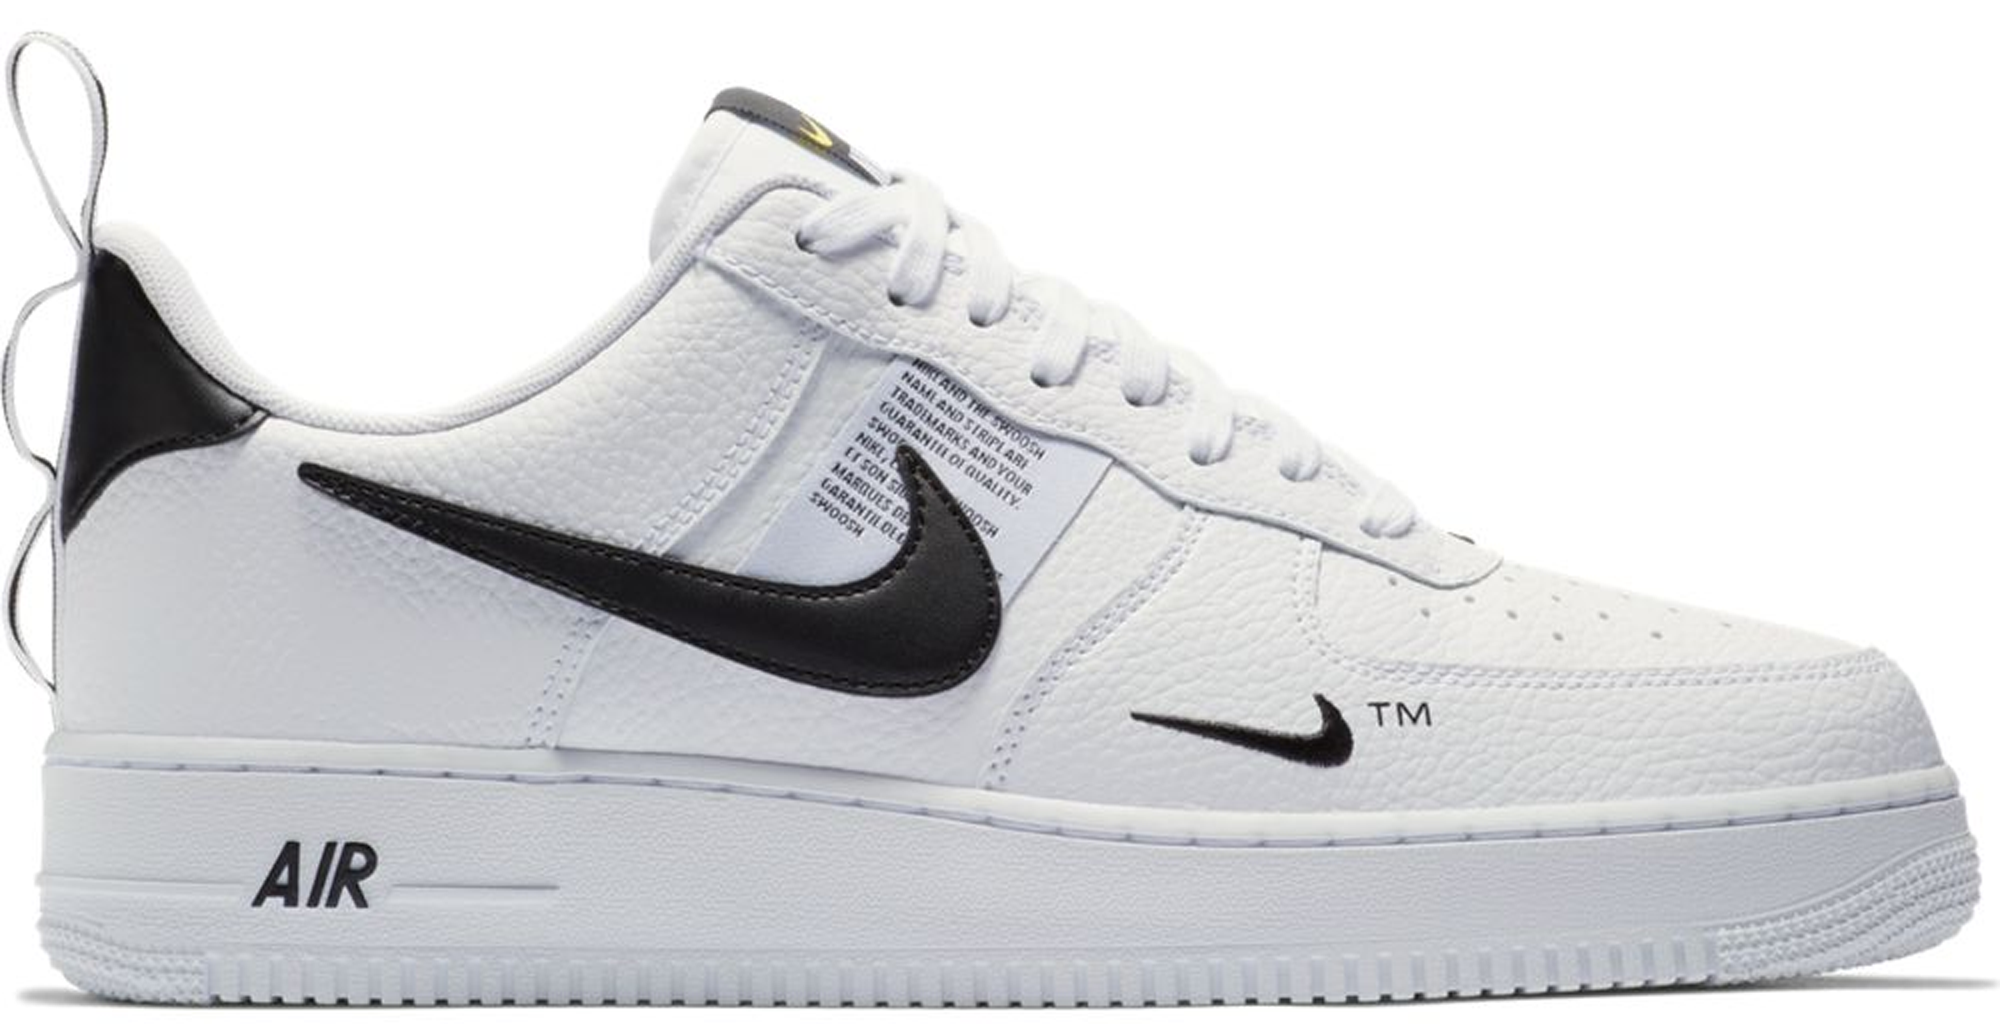 Air Force 1 Low Utility White Black (GS)